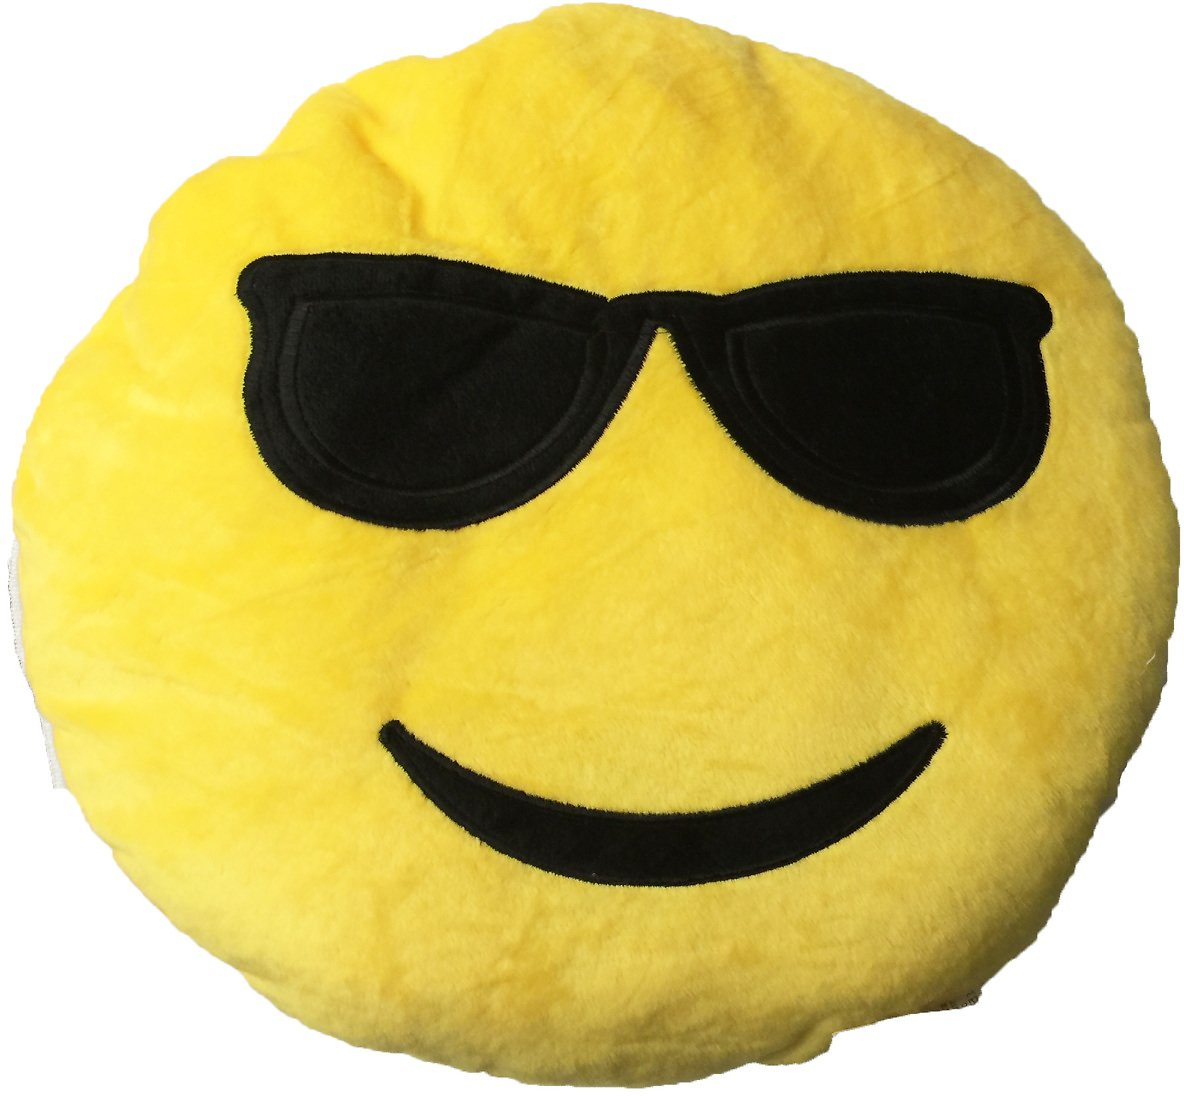 Creative Motion Industries Smiley Face with Cool Sunglasses Emoji Cushion Pillow